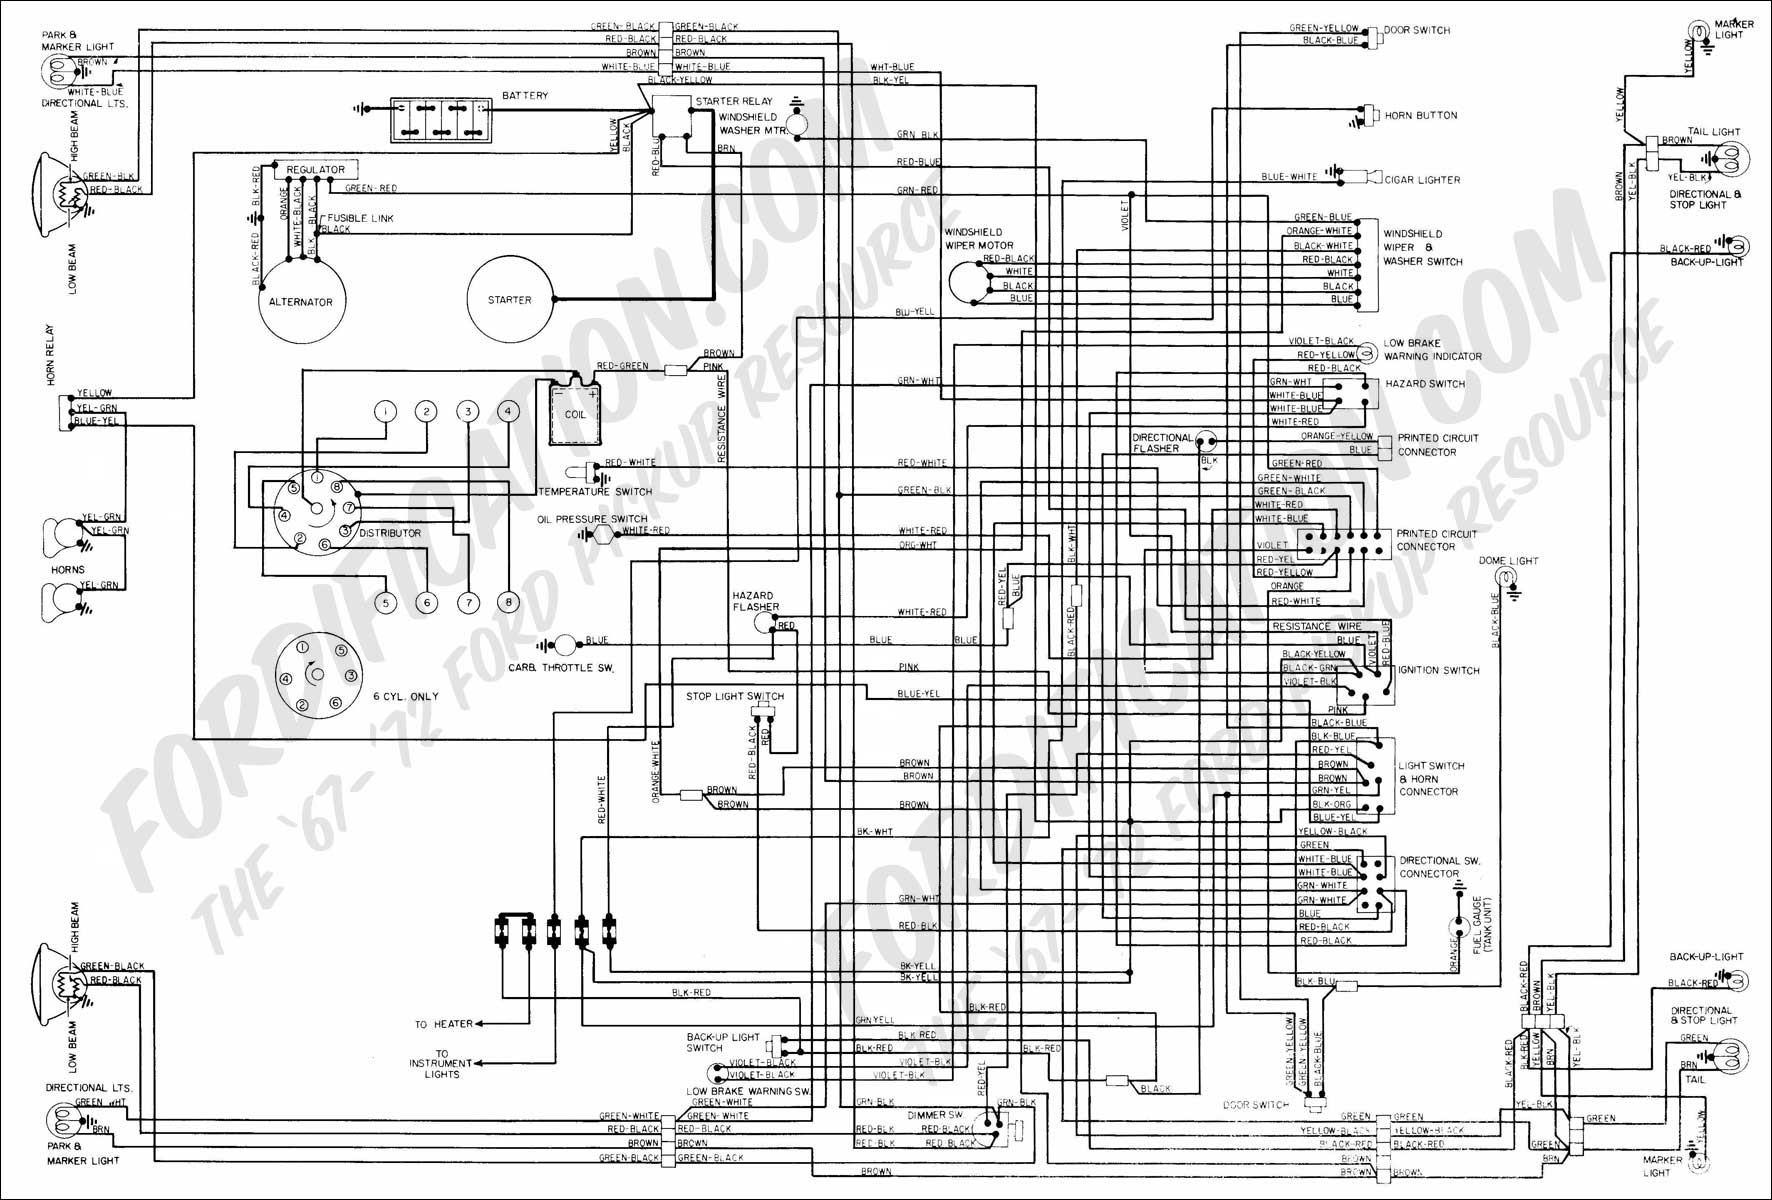 wiring diagram 72_quick 2002 ford f250 wiring diagram efcaviation com ford f250 wiring diagram at n-0.co